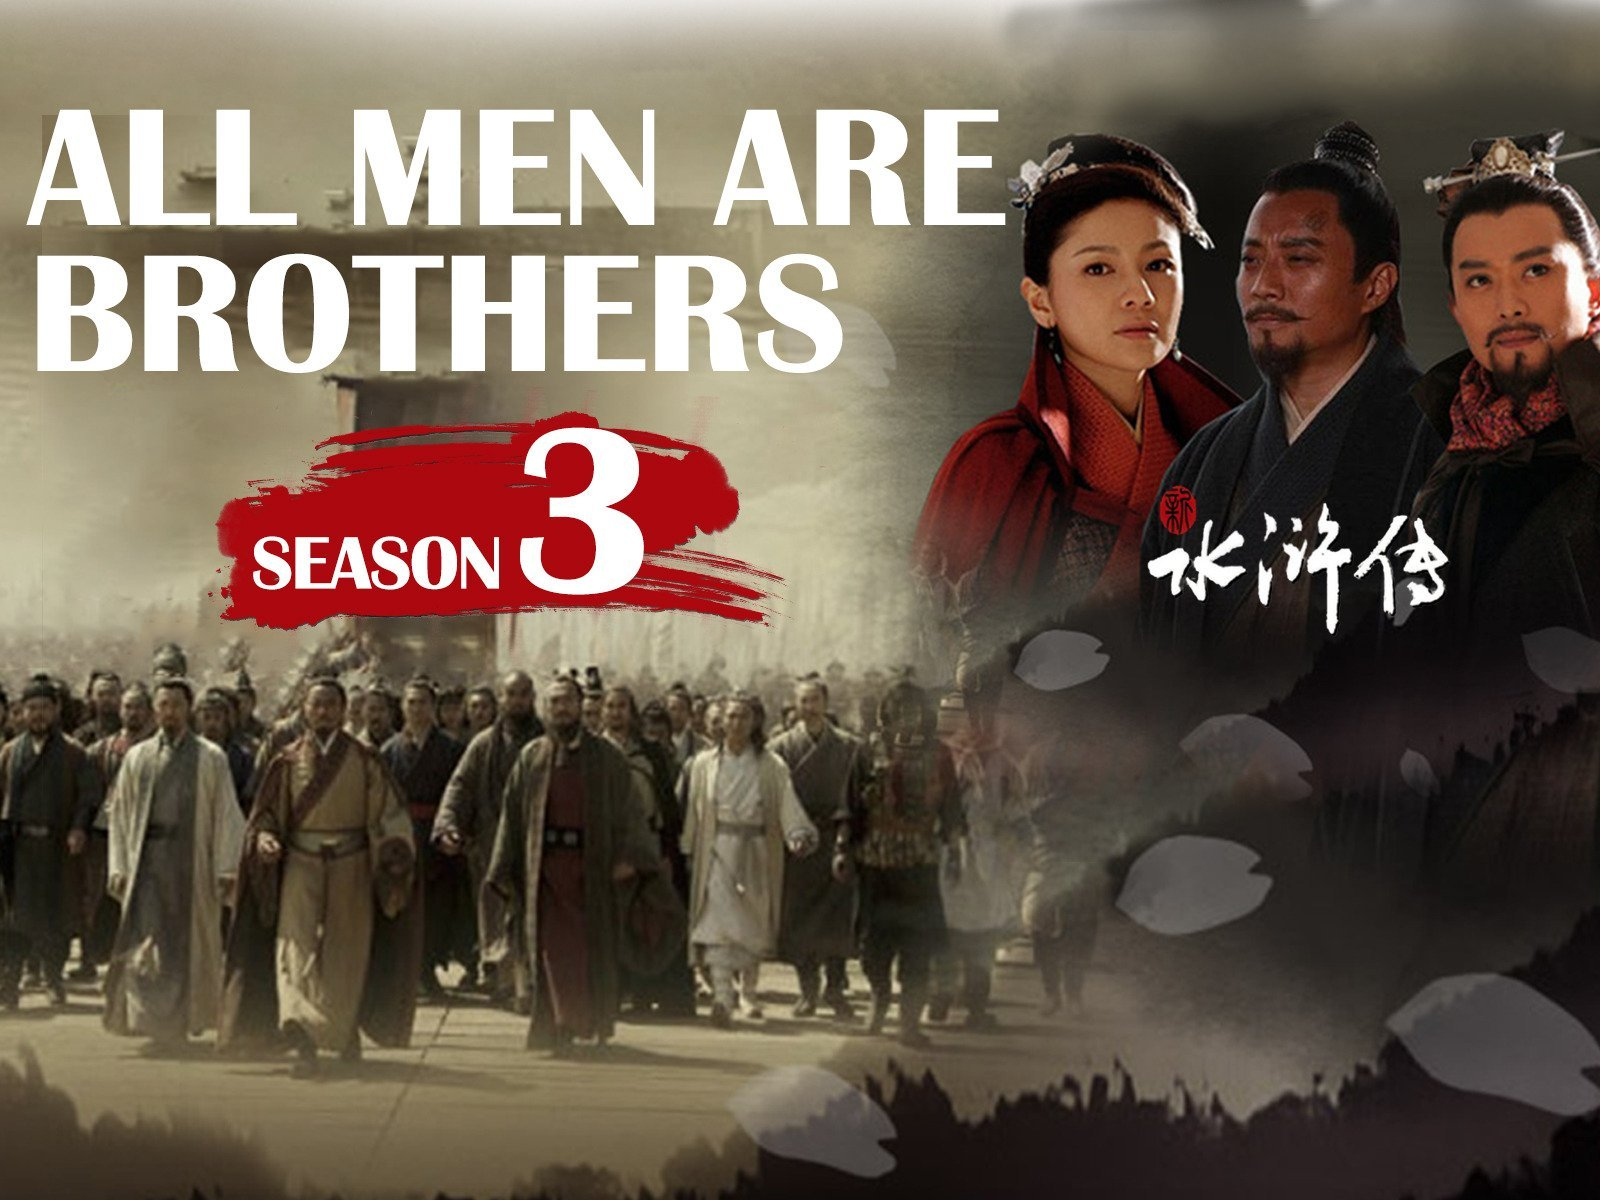 All Men are Brothers Season 3 on Amazon Prime Video UK